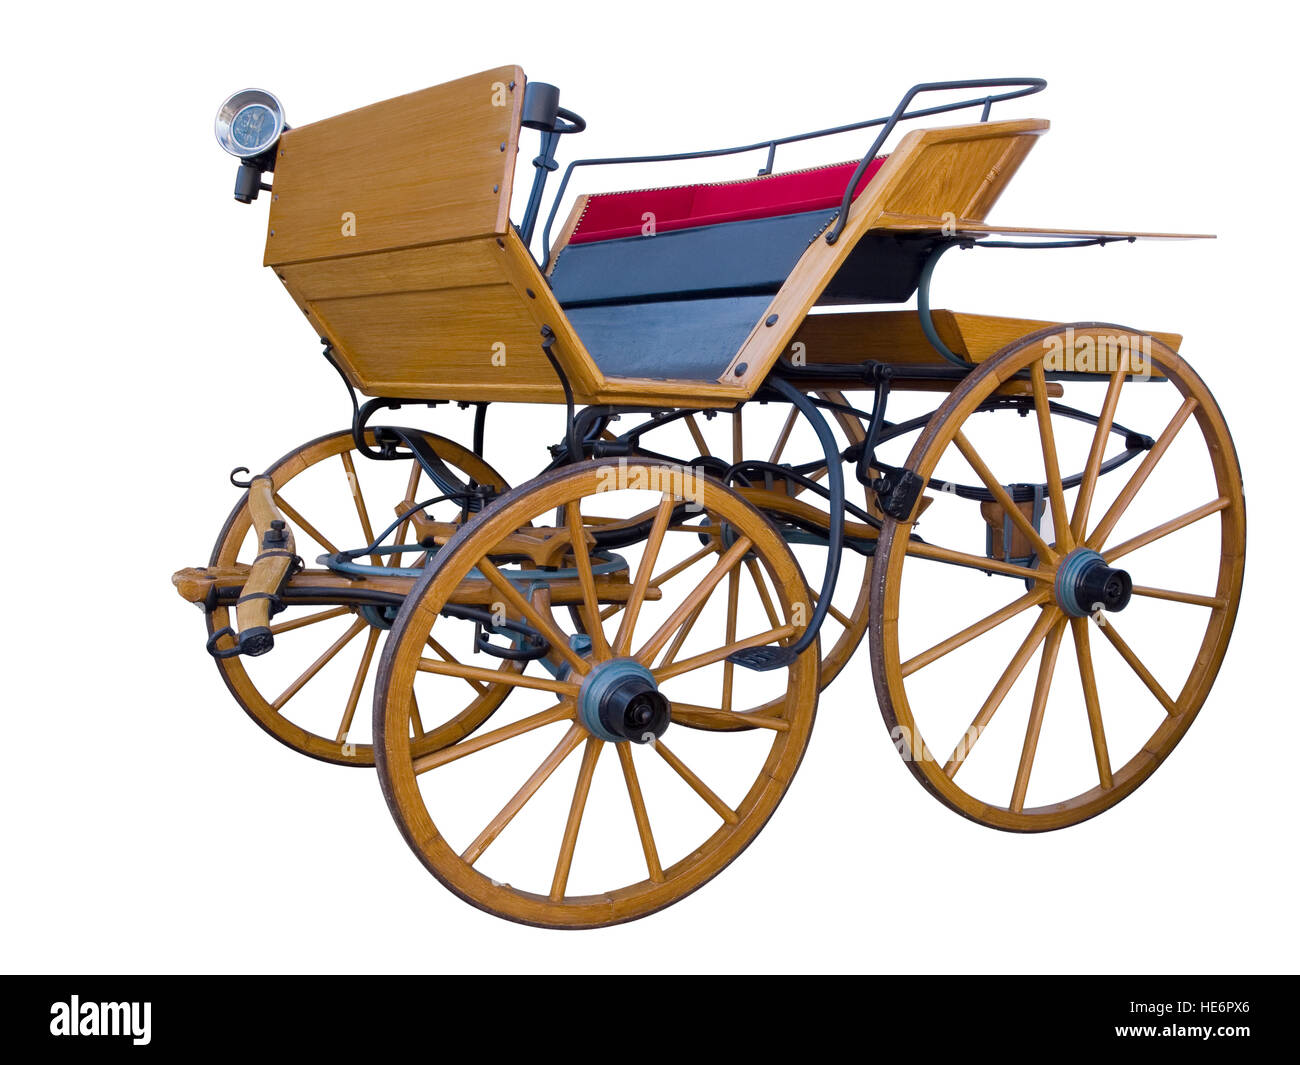 Horse drawn carriages stand isolated on white anno 1800. - Stock Image